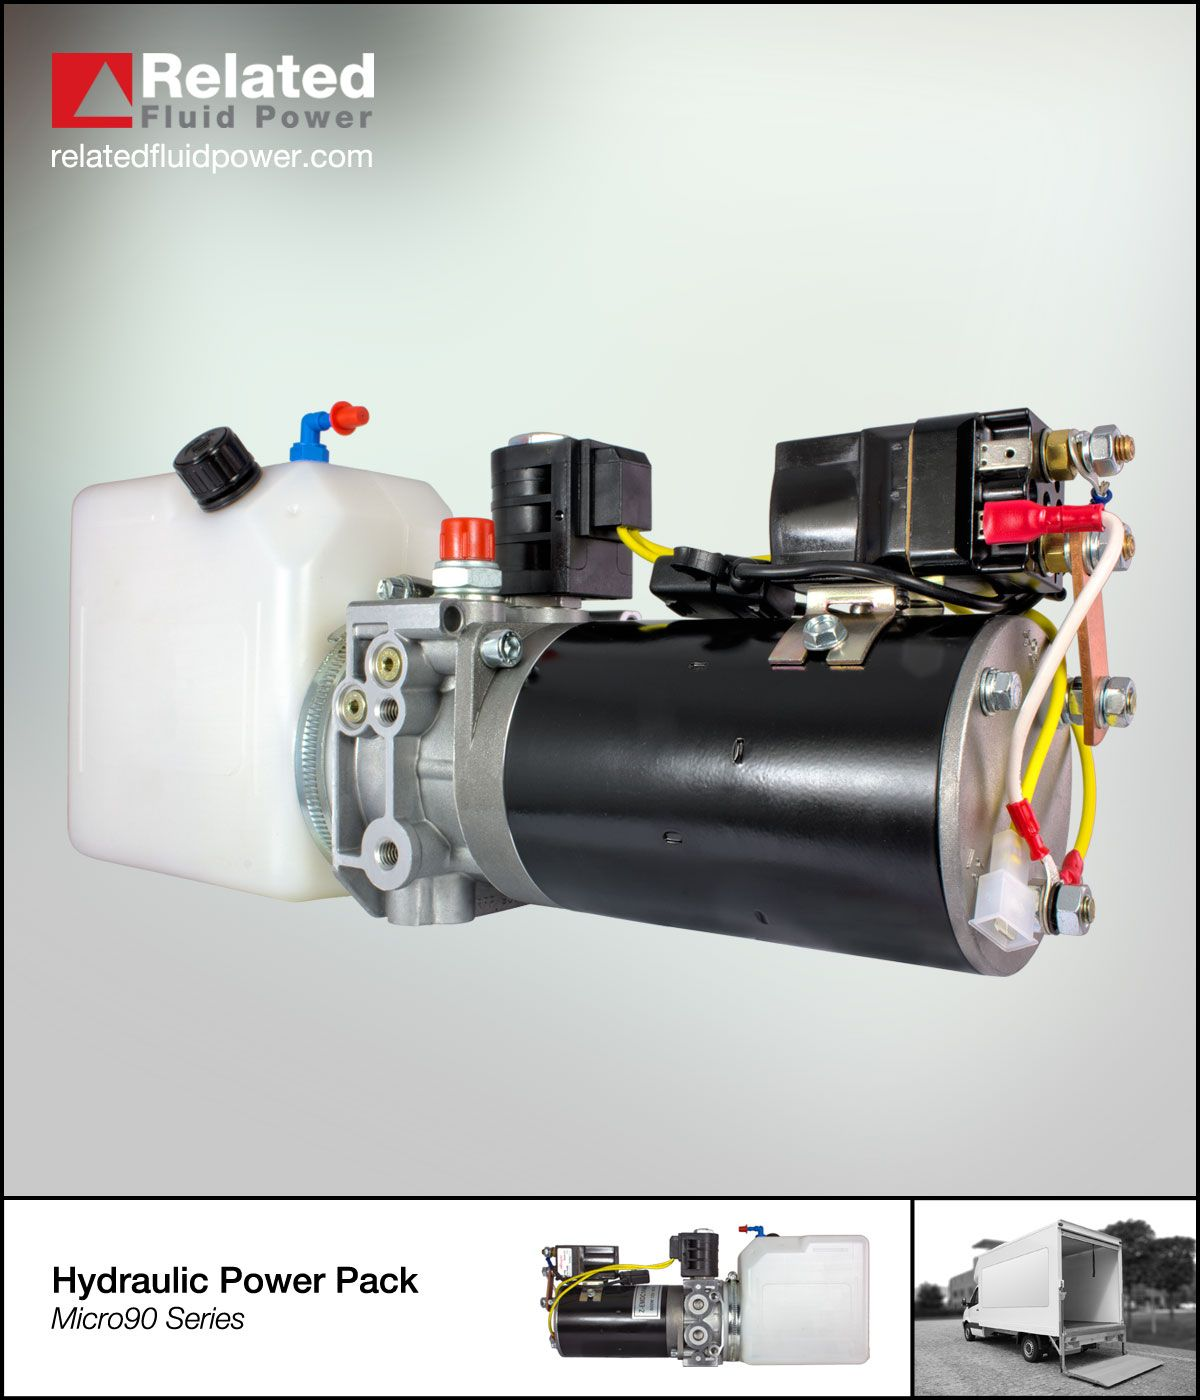 Micro90 Series Hydraulic Power Packs Compact Lightweight And Versatile Hydraulic Systems Hydraulic Power Pack